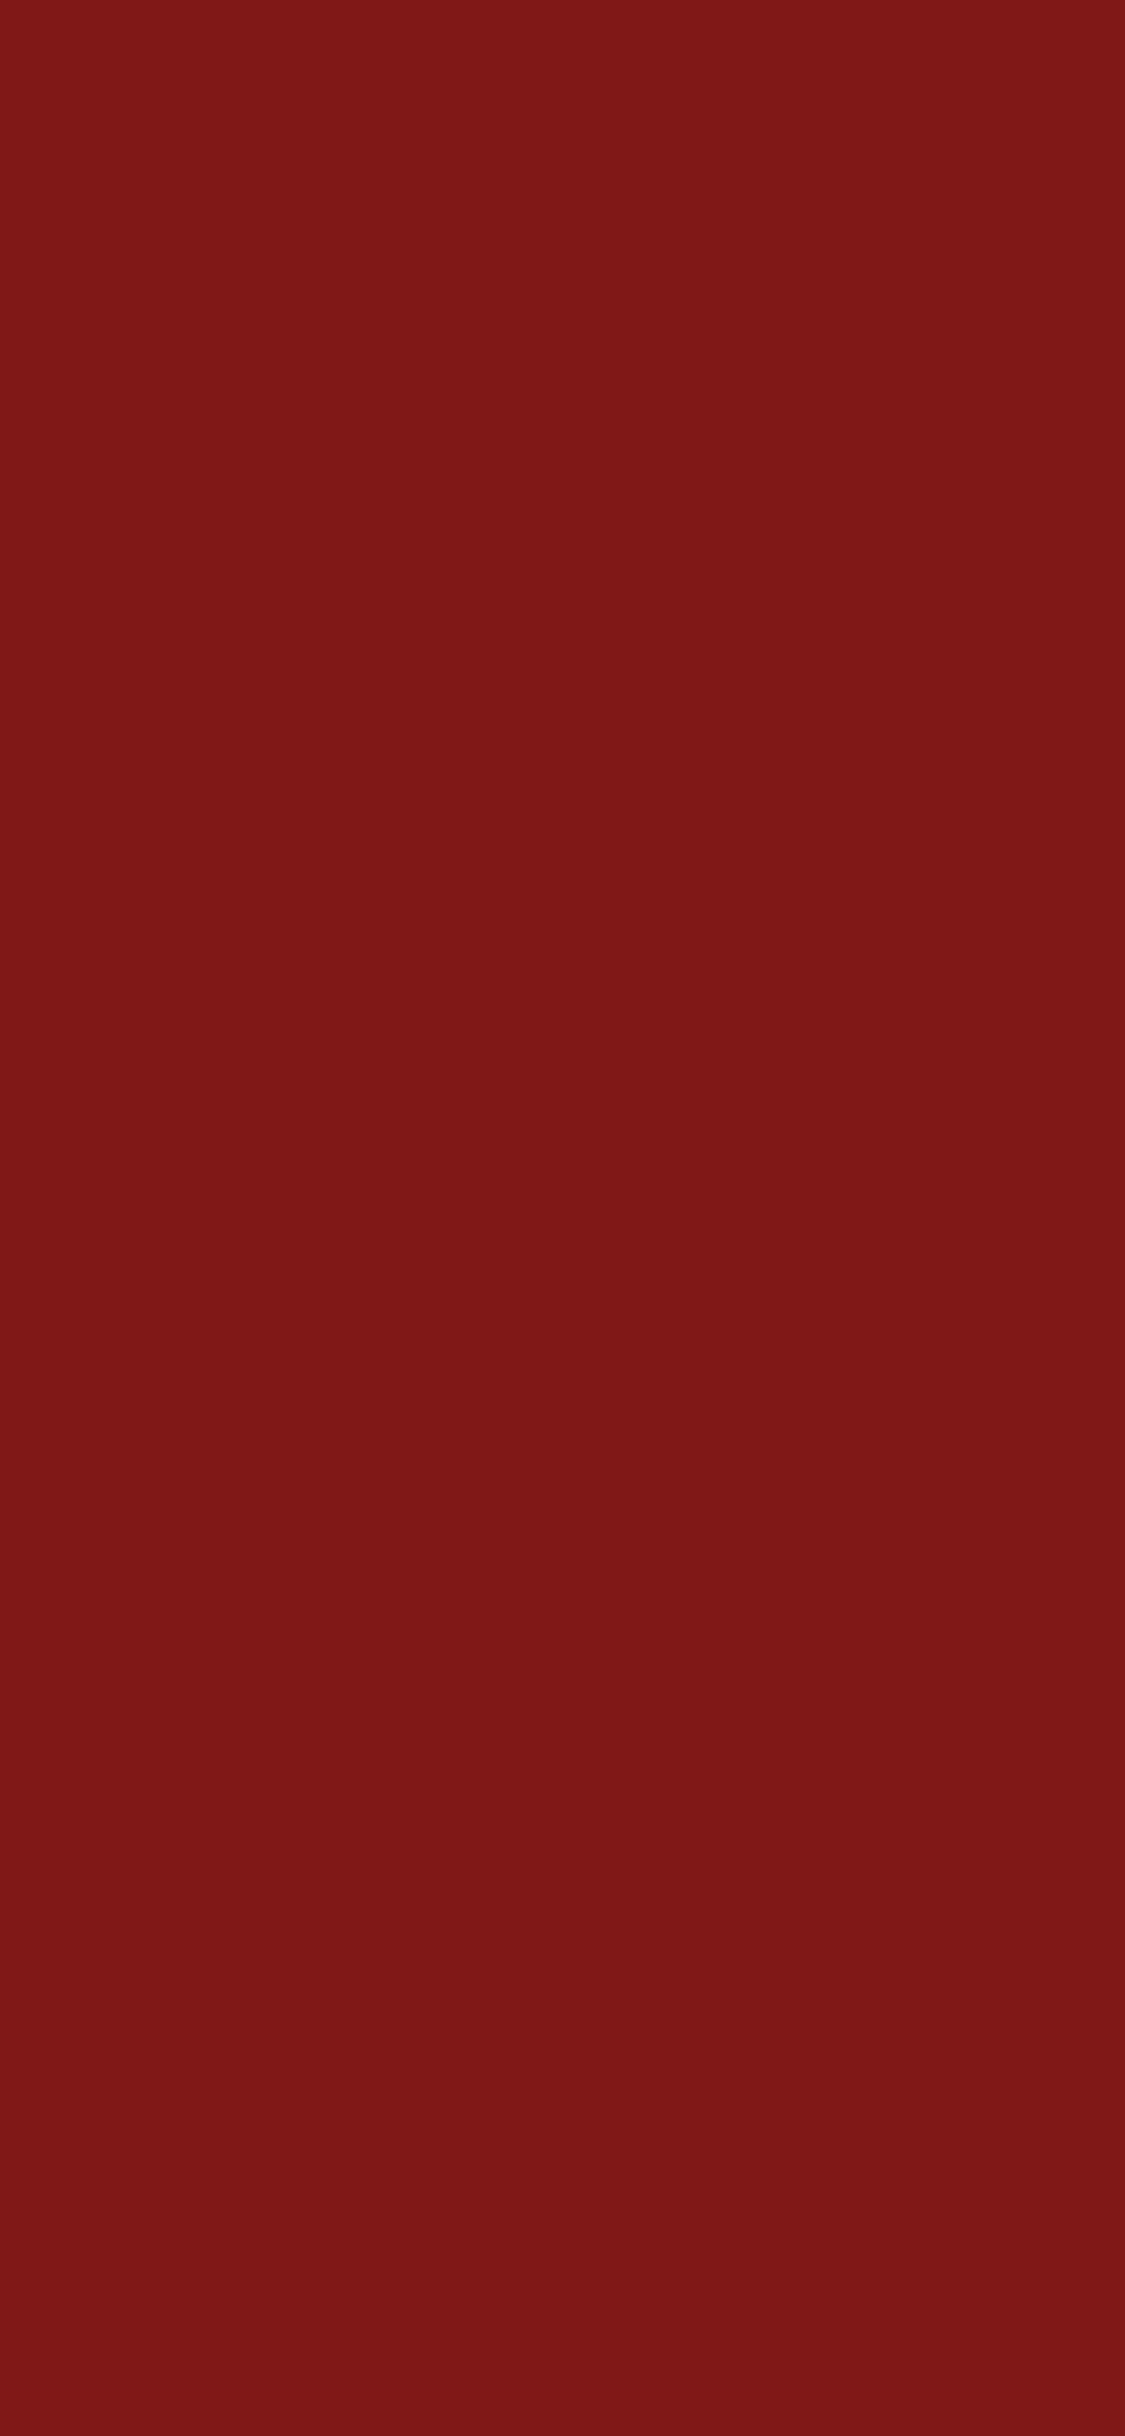 1125x2436 Falu Red Solid Color Background